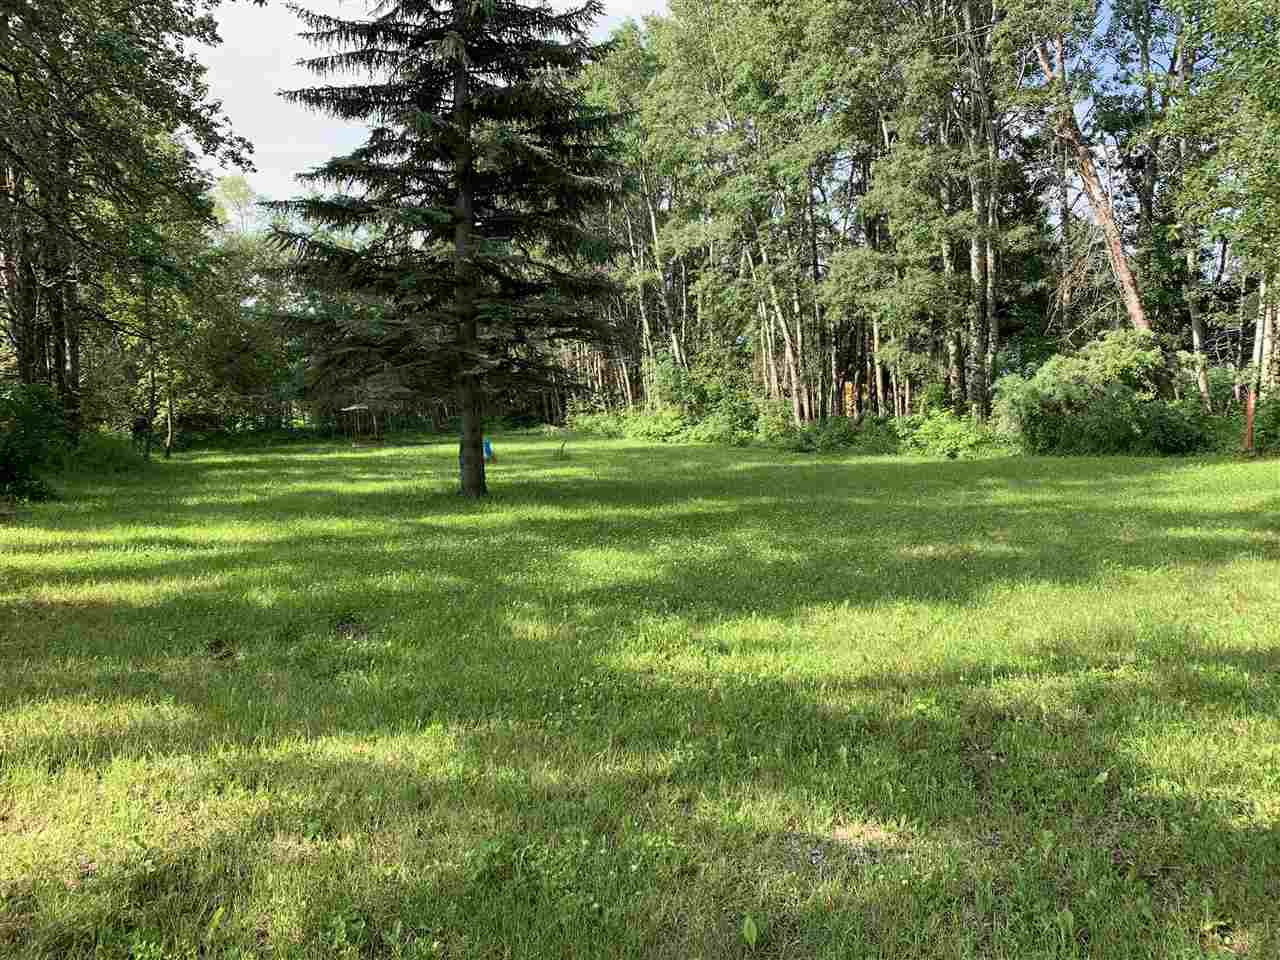 Main Photo: #105 54500 Lac Ste Anne Tr.: Rural Sturgeon County Rural Land/Vacant Lot for sale : MLS®# E4165969